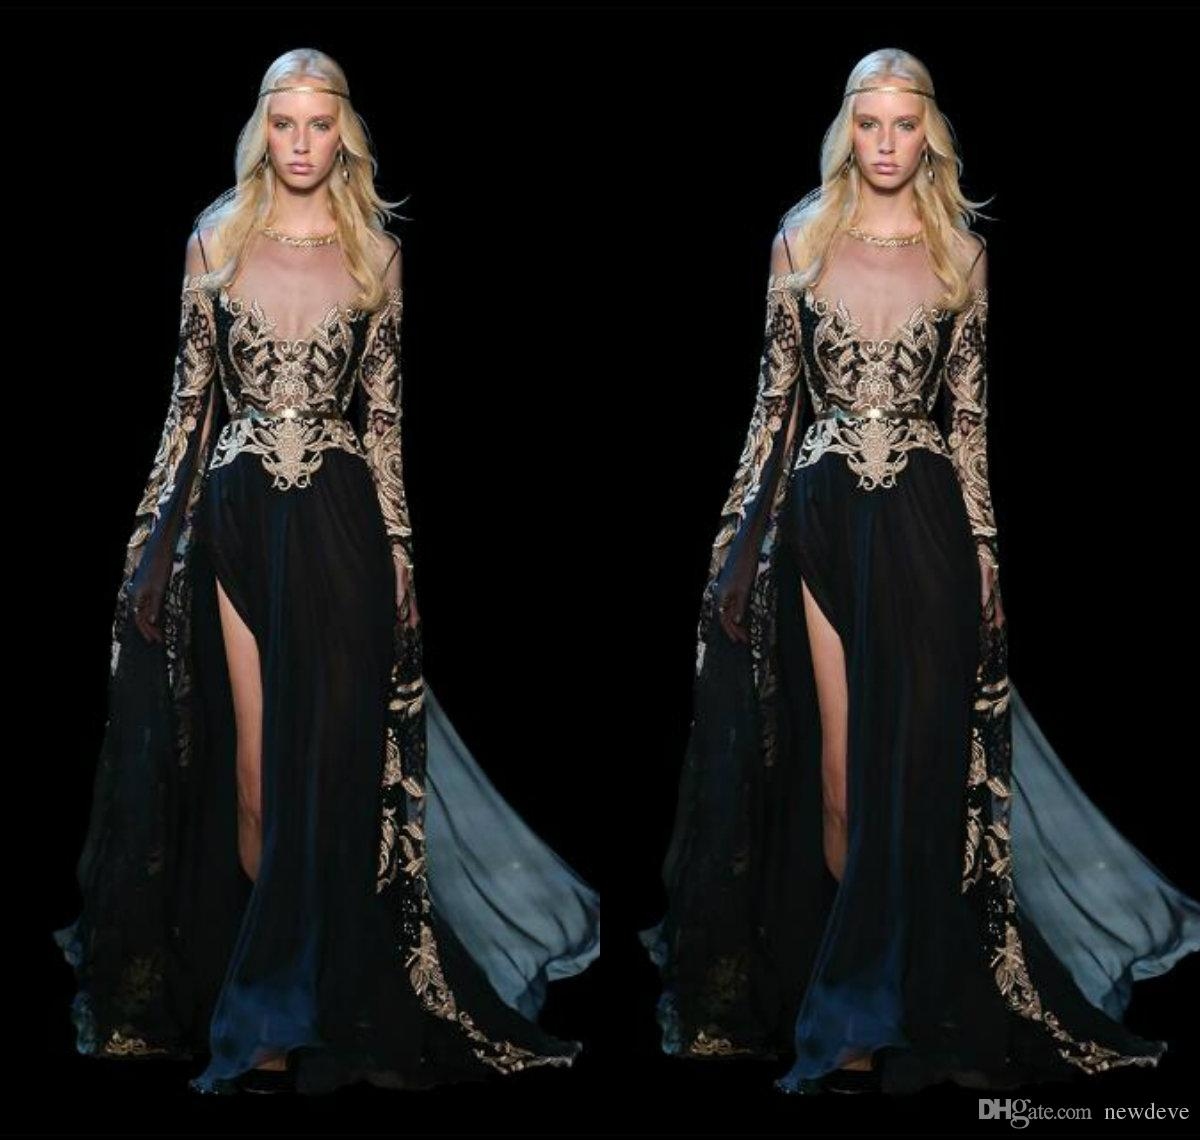 Front Split With Sashes Dresses Elie Saab Art Deco Inspired Neck Lace Appliques Prom Gowns Black Formal Long Sleeve Dress Evening